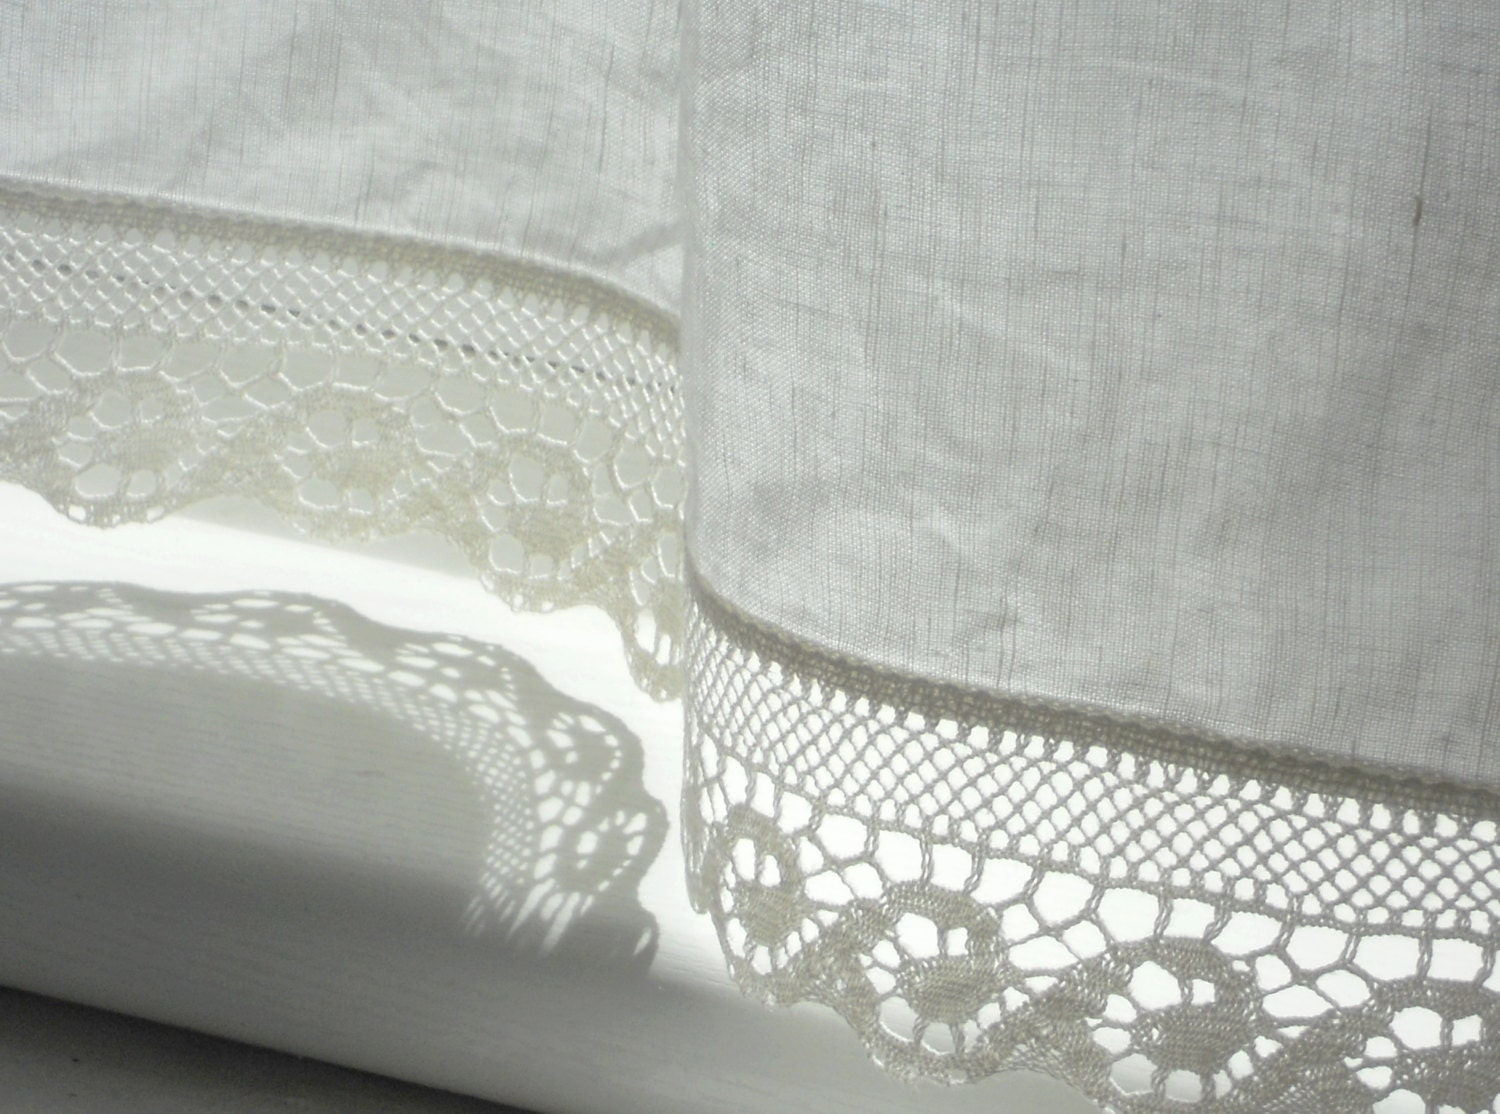 Lace bathroom window curtains - Bathroom Window Curtains With Wave Lace Edge Trim Natural White Linen Cafe Curtain Panel In French Cottage Style White Valance